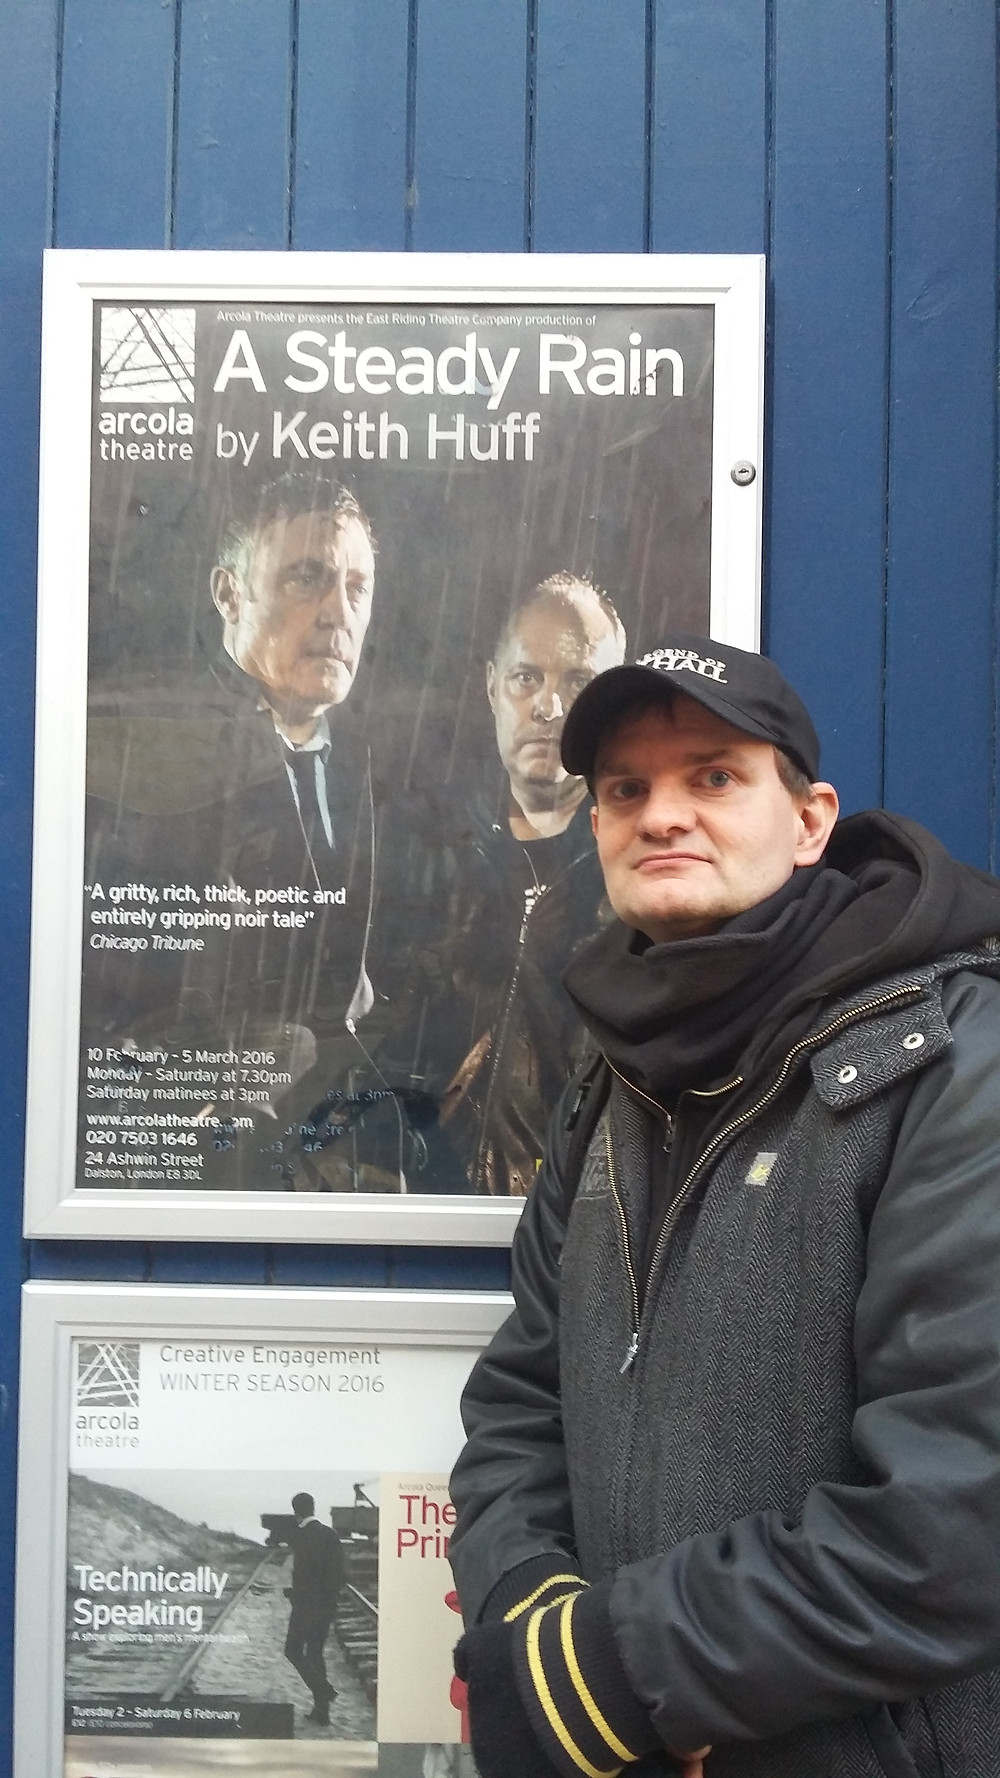 At the Arcola watching my friend Davis Schaal in A Steady Rain - this is not on my list of ten but I found going to see good work always gives you a kick up the arse to write something equally good. Thank you Keith Huff